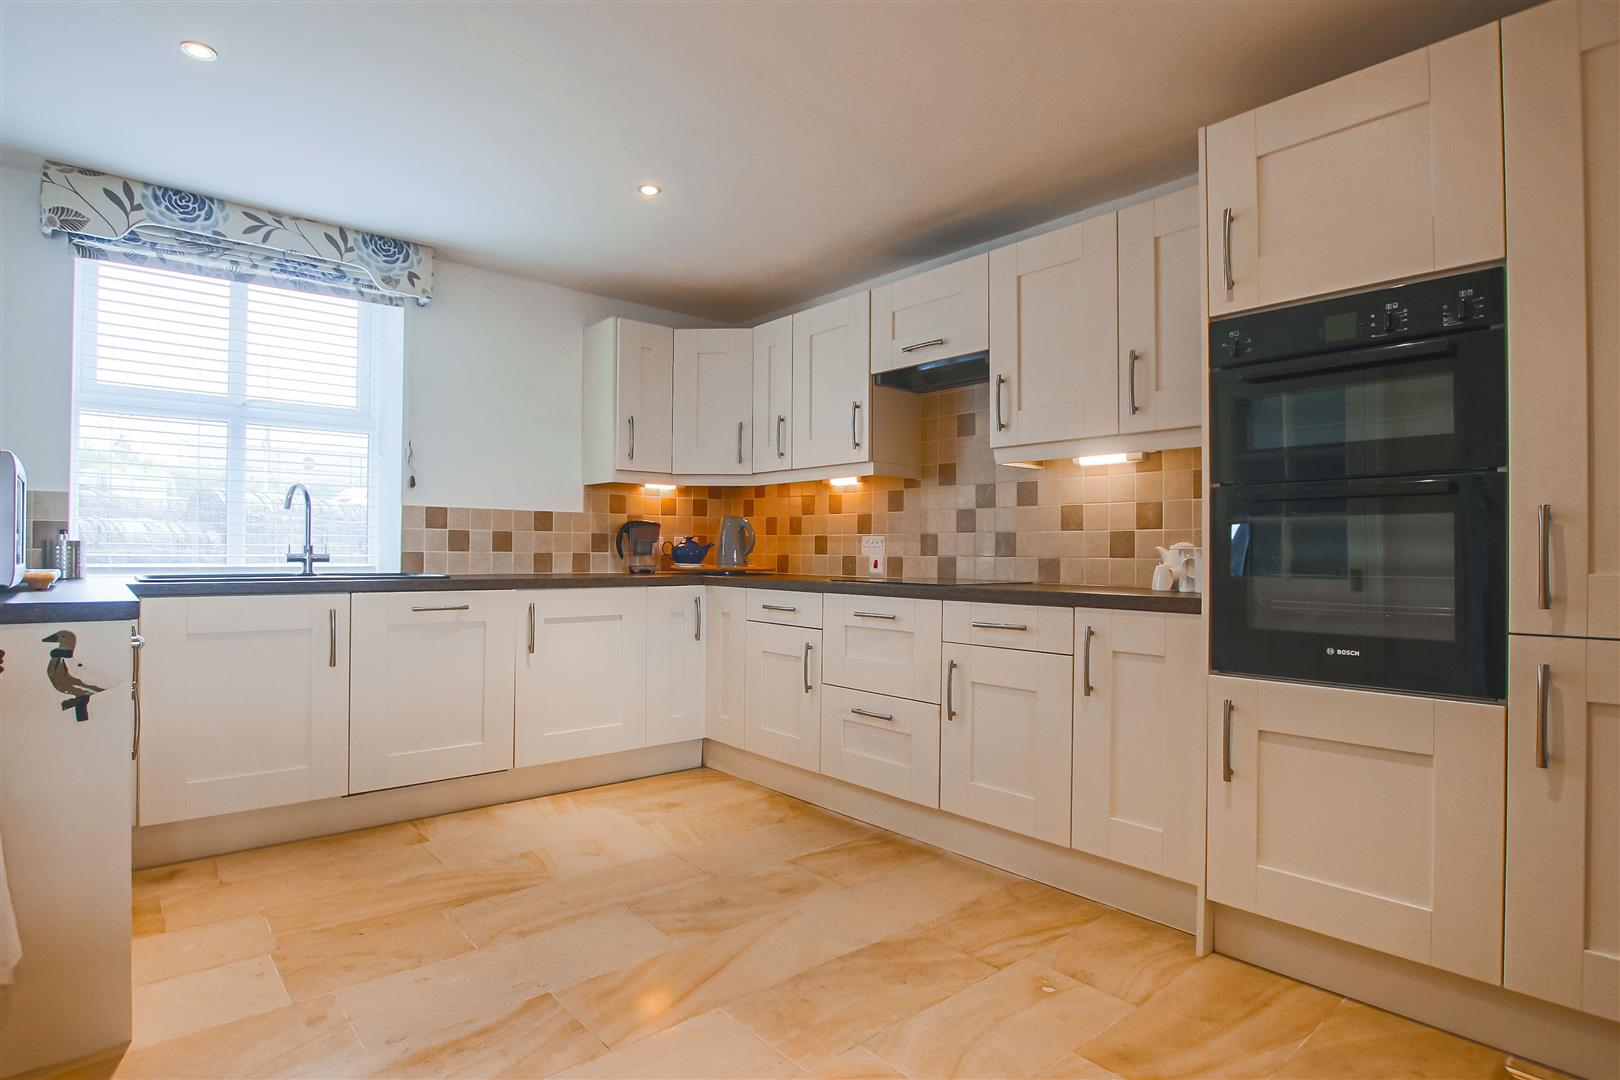 4 Bedroom Townhouse House For Sale - Image 3